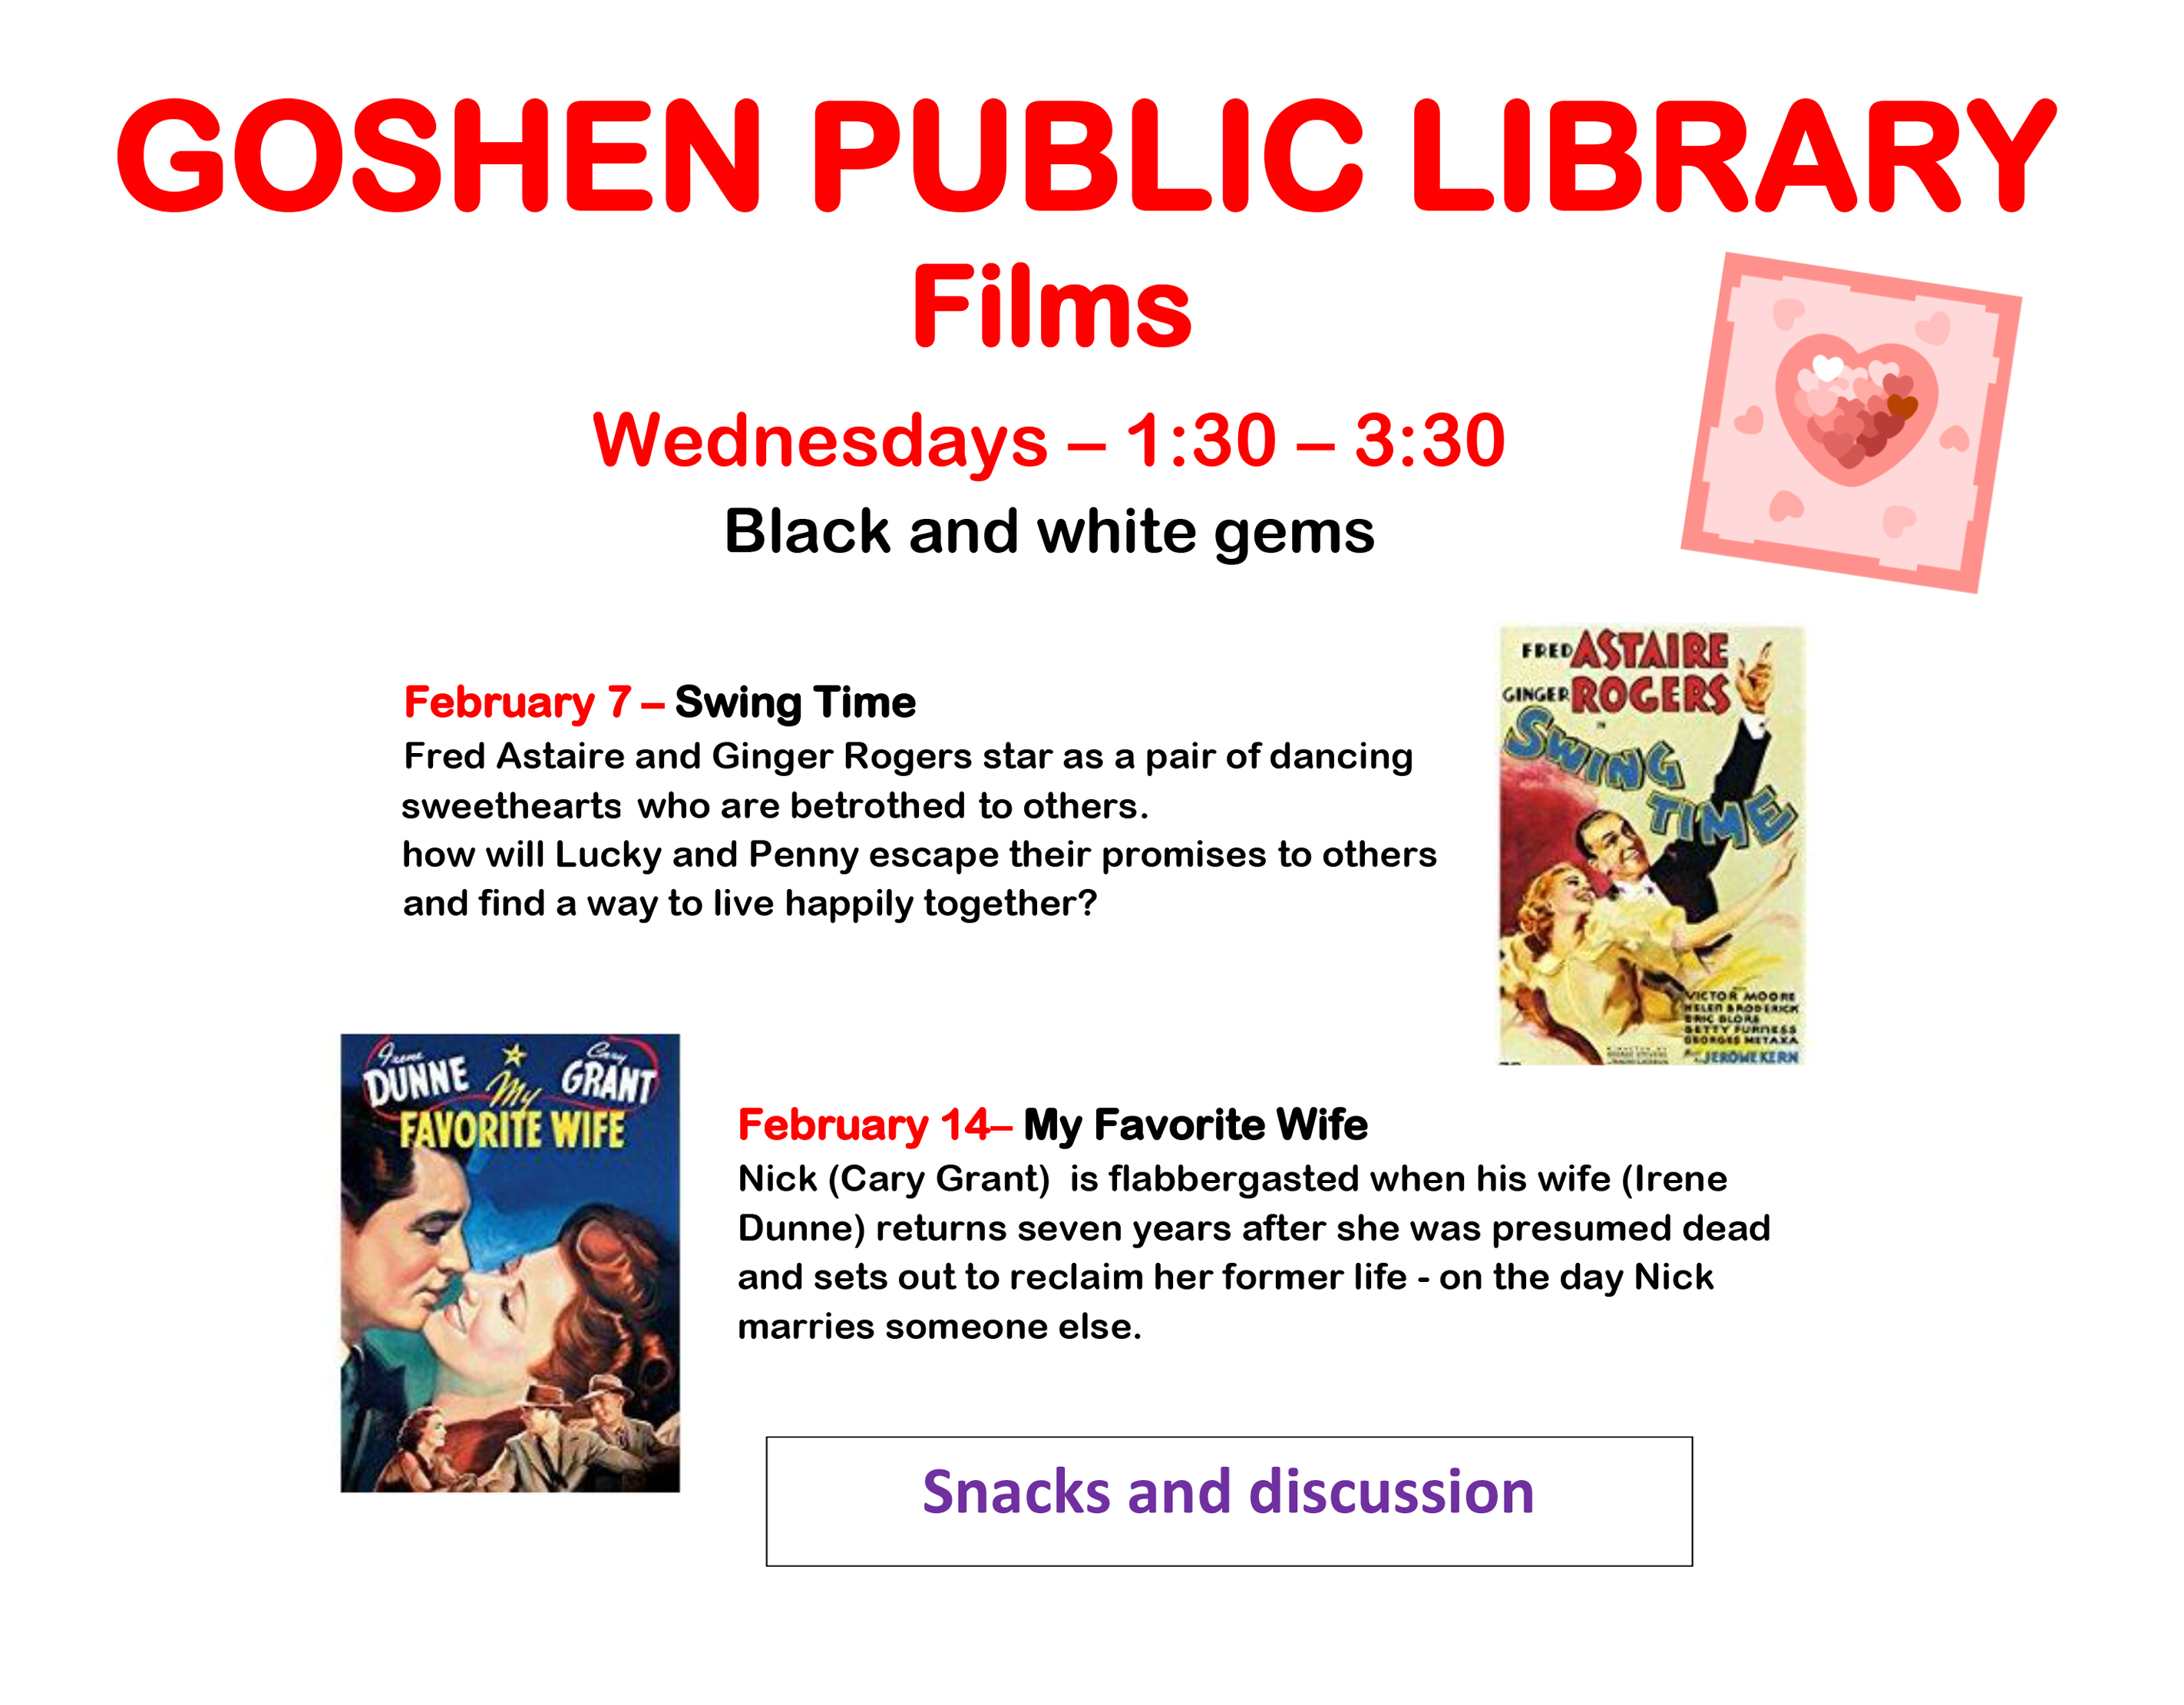 GOSHEN PUBLIC LIBRARY films Feb 7 2018